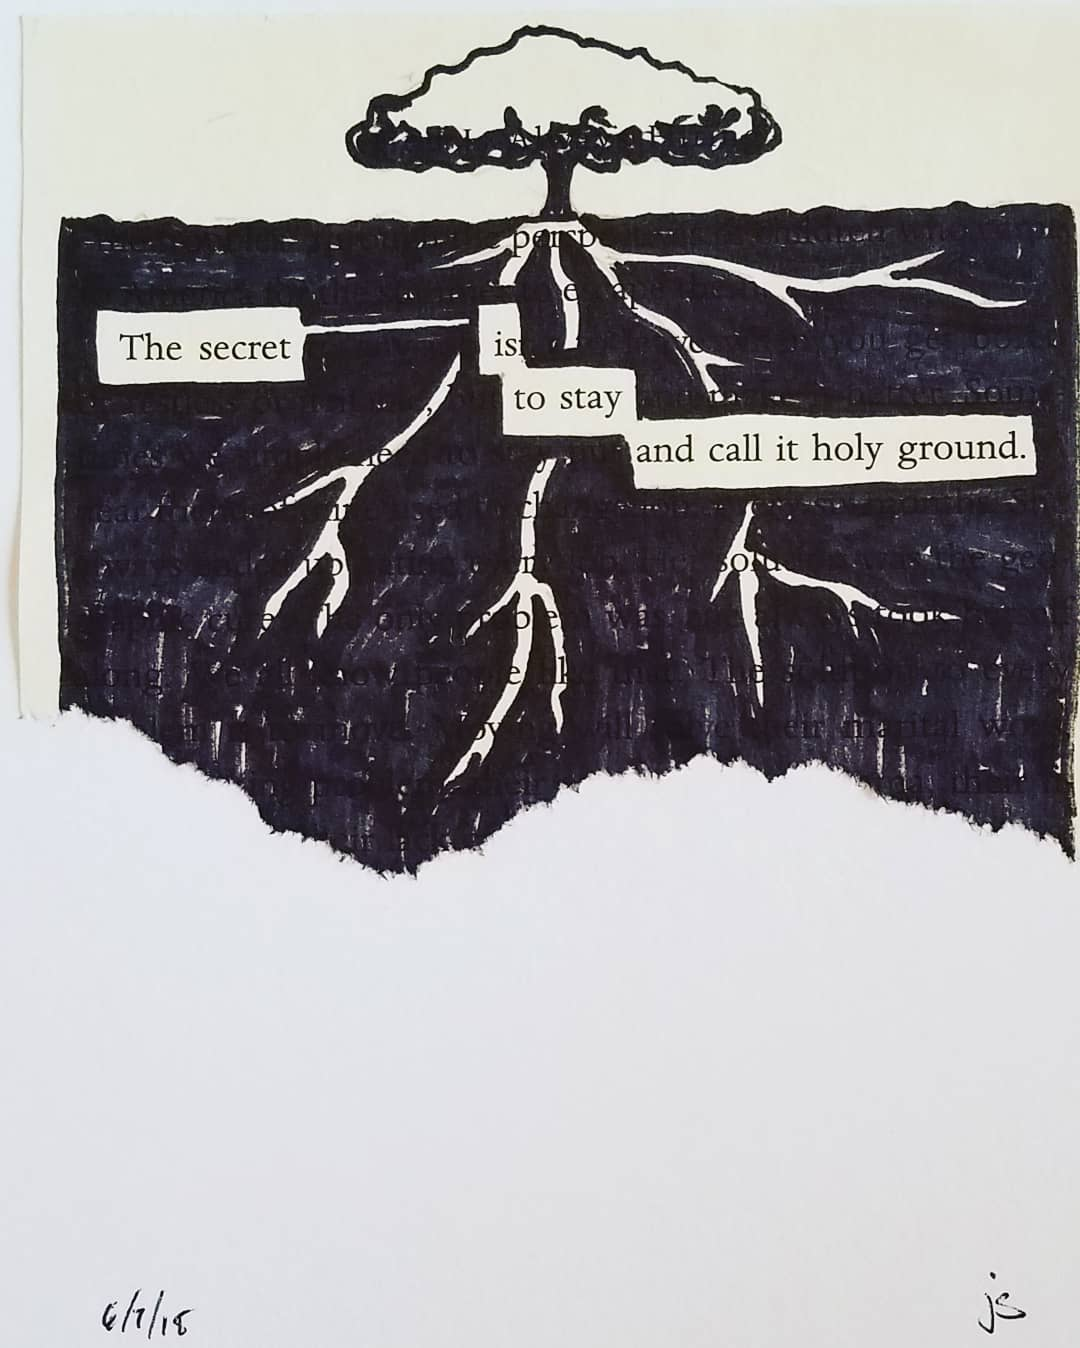 blackout poem; the secret is to stay and call it holy ground.